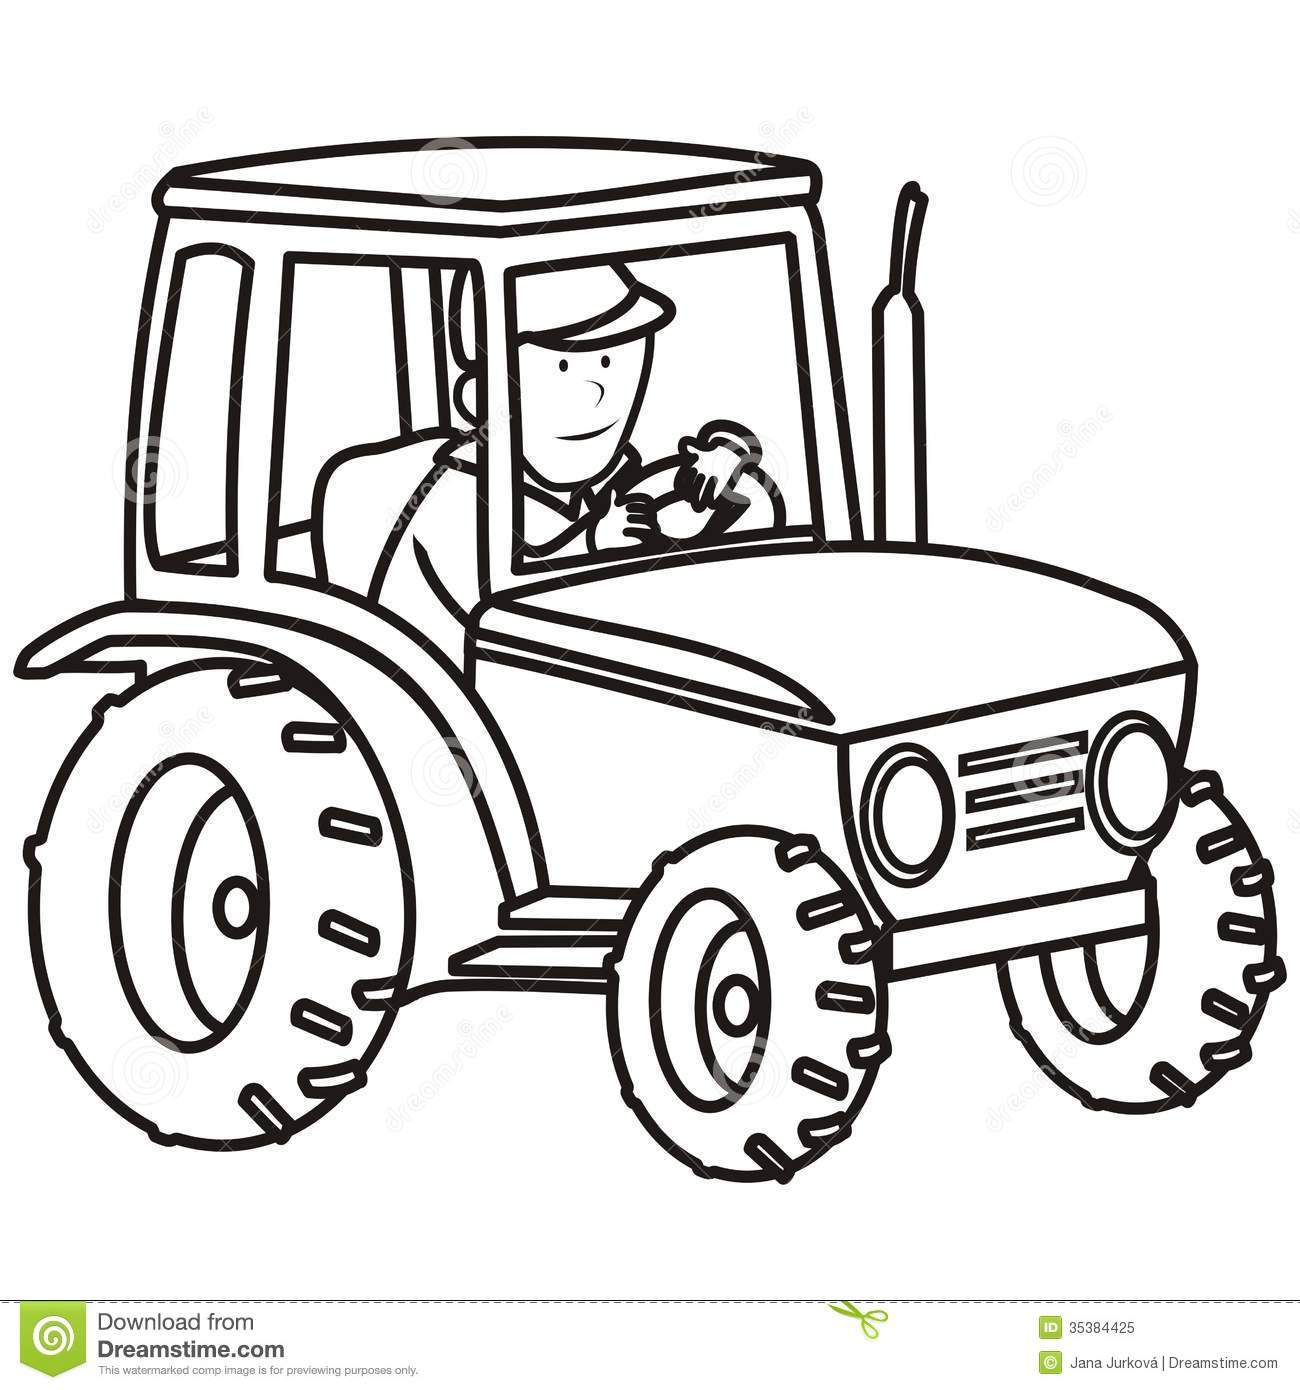 Tractor-coloring book stock vector. Image of chimney